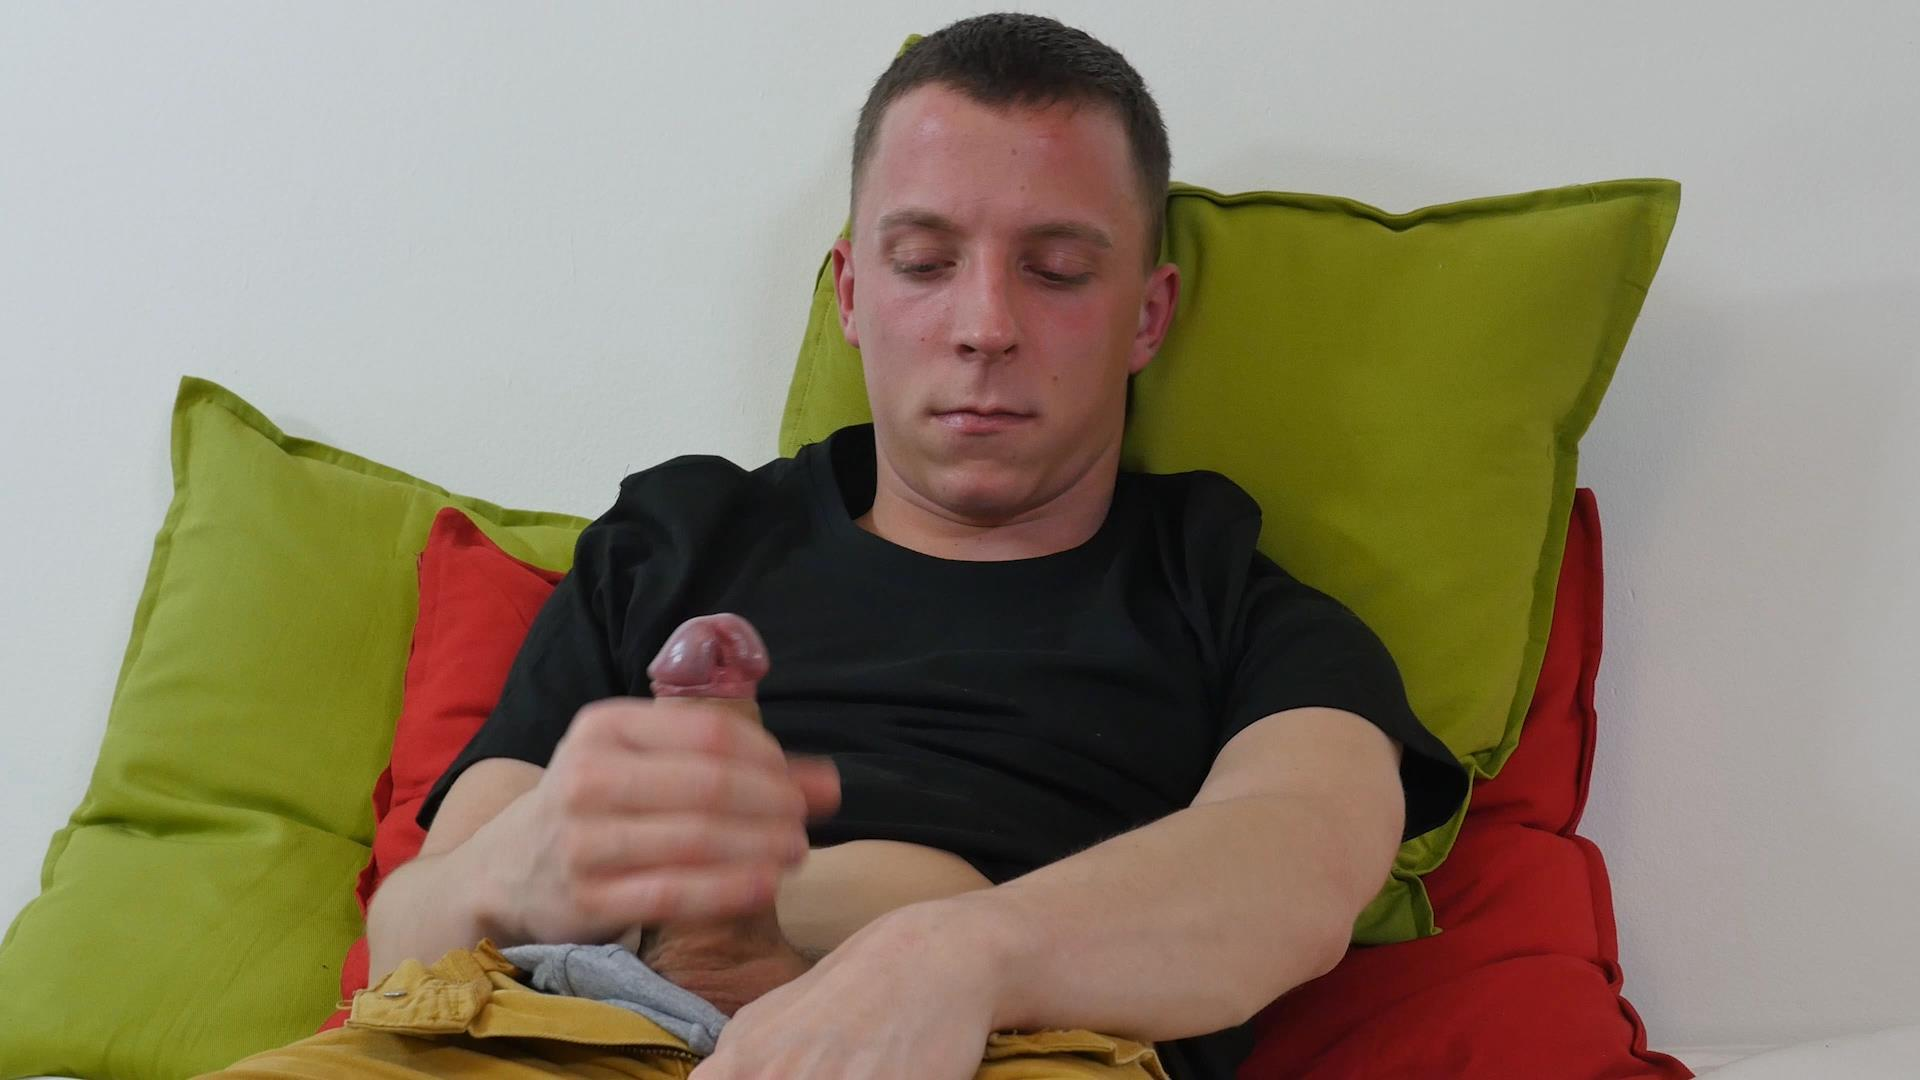 Twink Boys Party Andrew Kitt Twink With Big Uncut Cock Masturbation Amateur Gay Porn 06